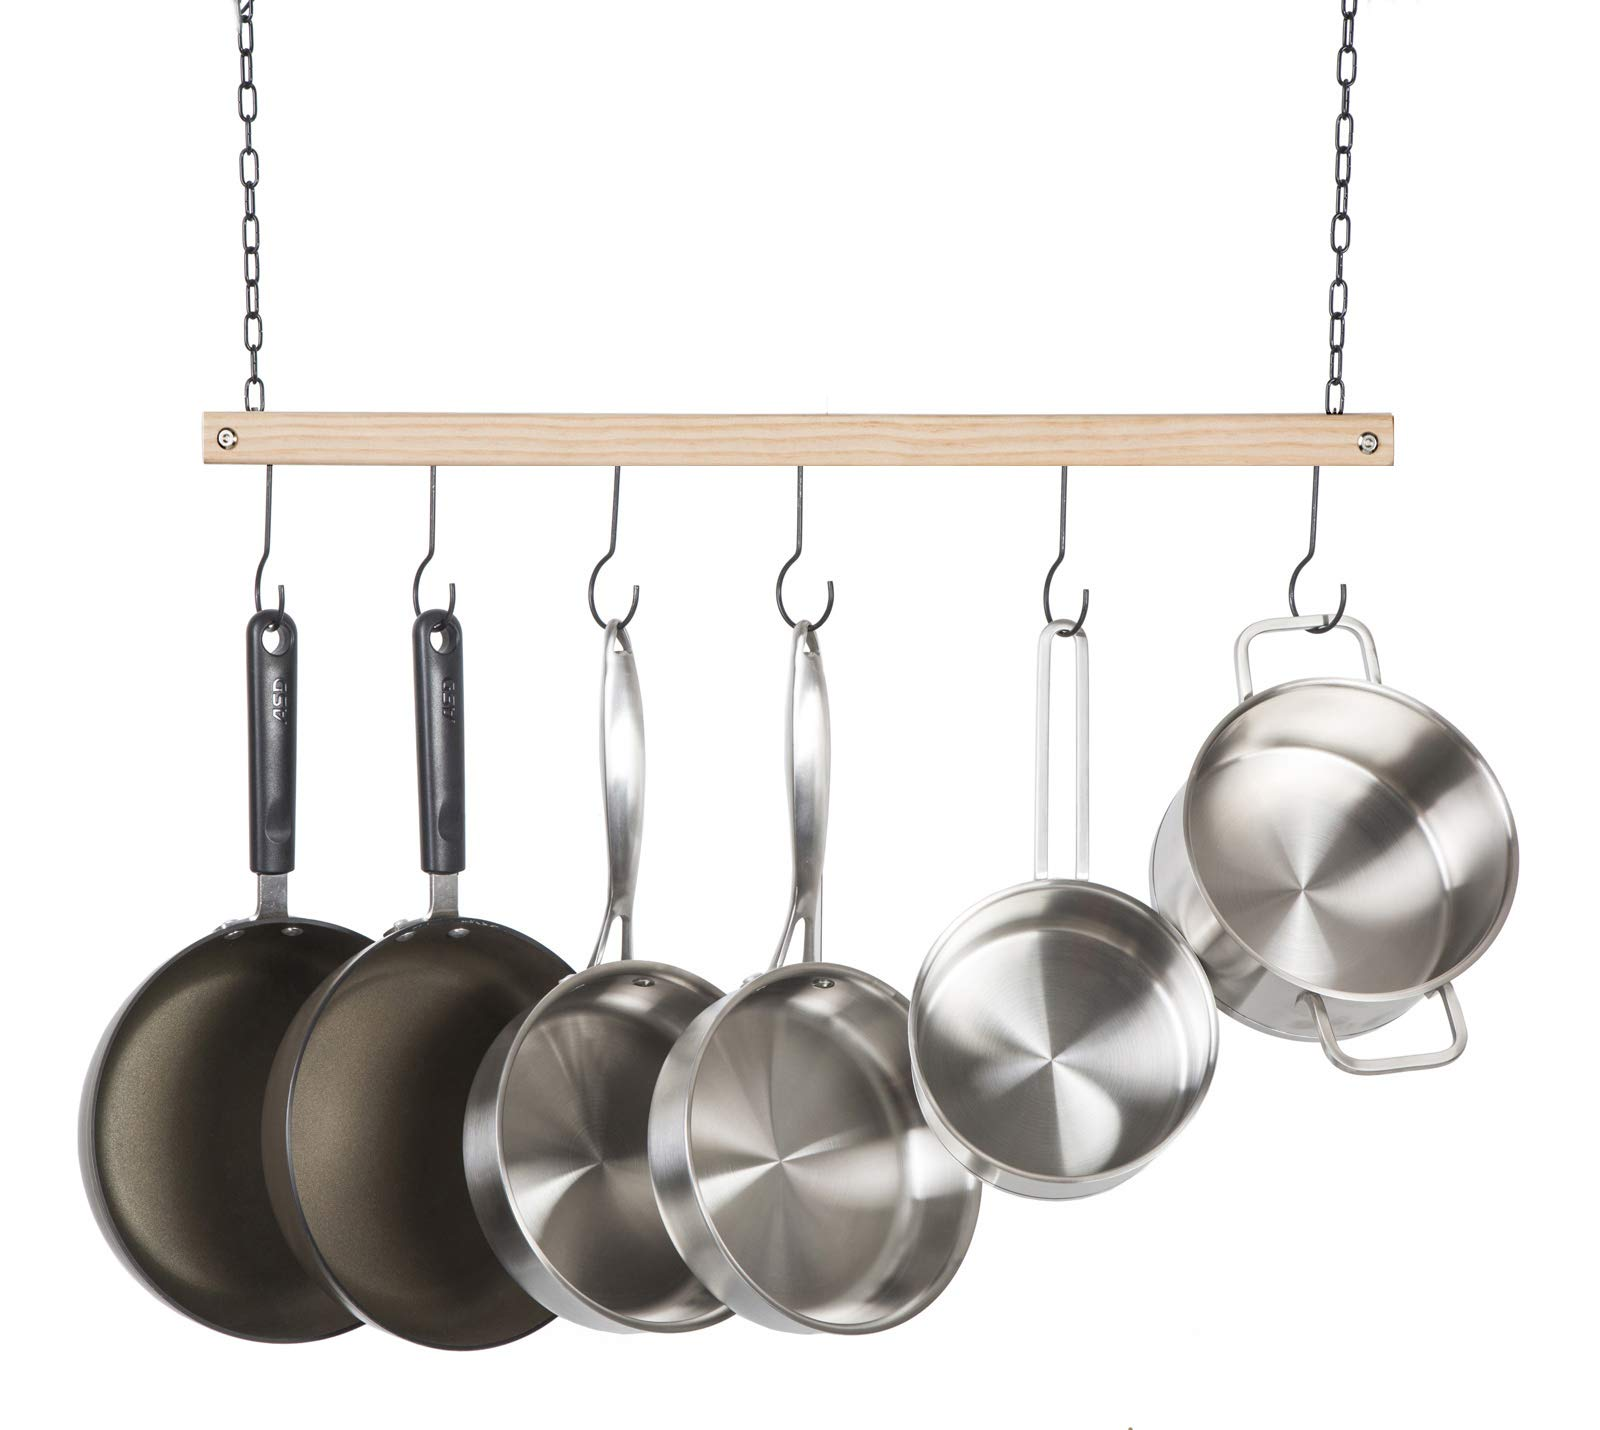 Soduku Pot and Pan Rack Organizer, Ceiling Mounted Single Wooden Cookware Hanger with 6 Hooks for Pot Pans Utensils